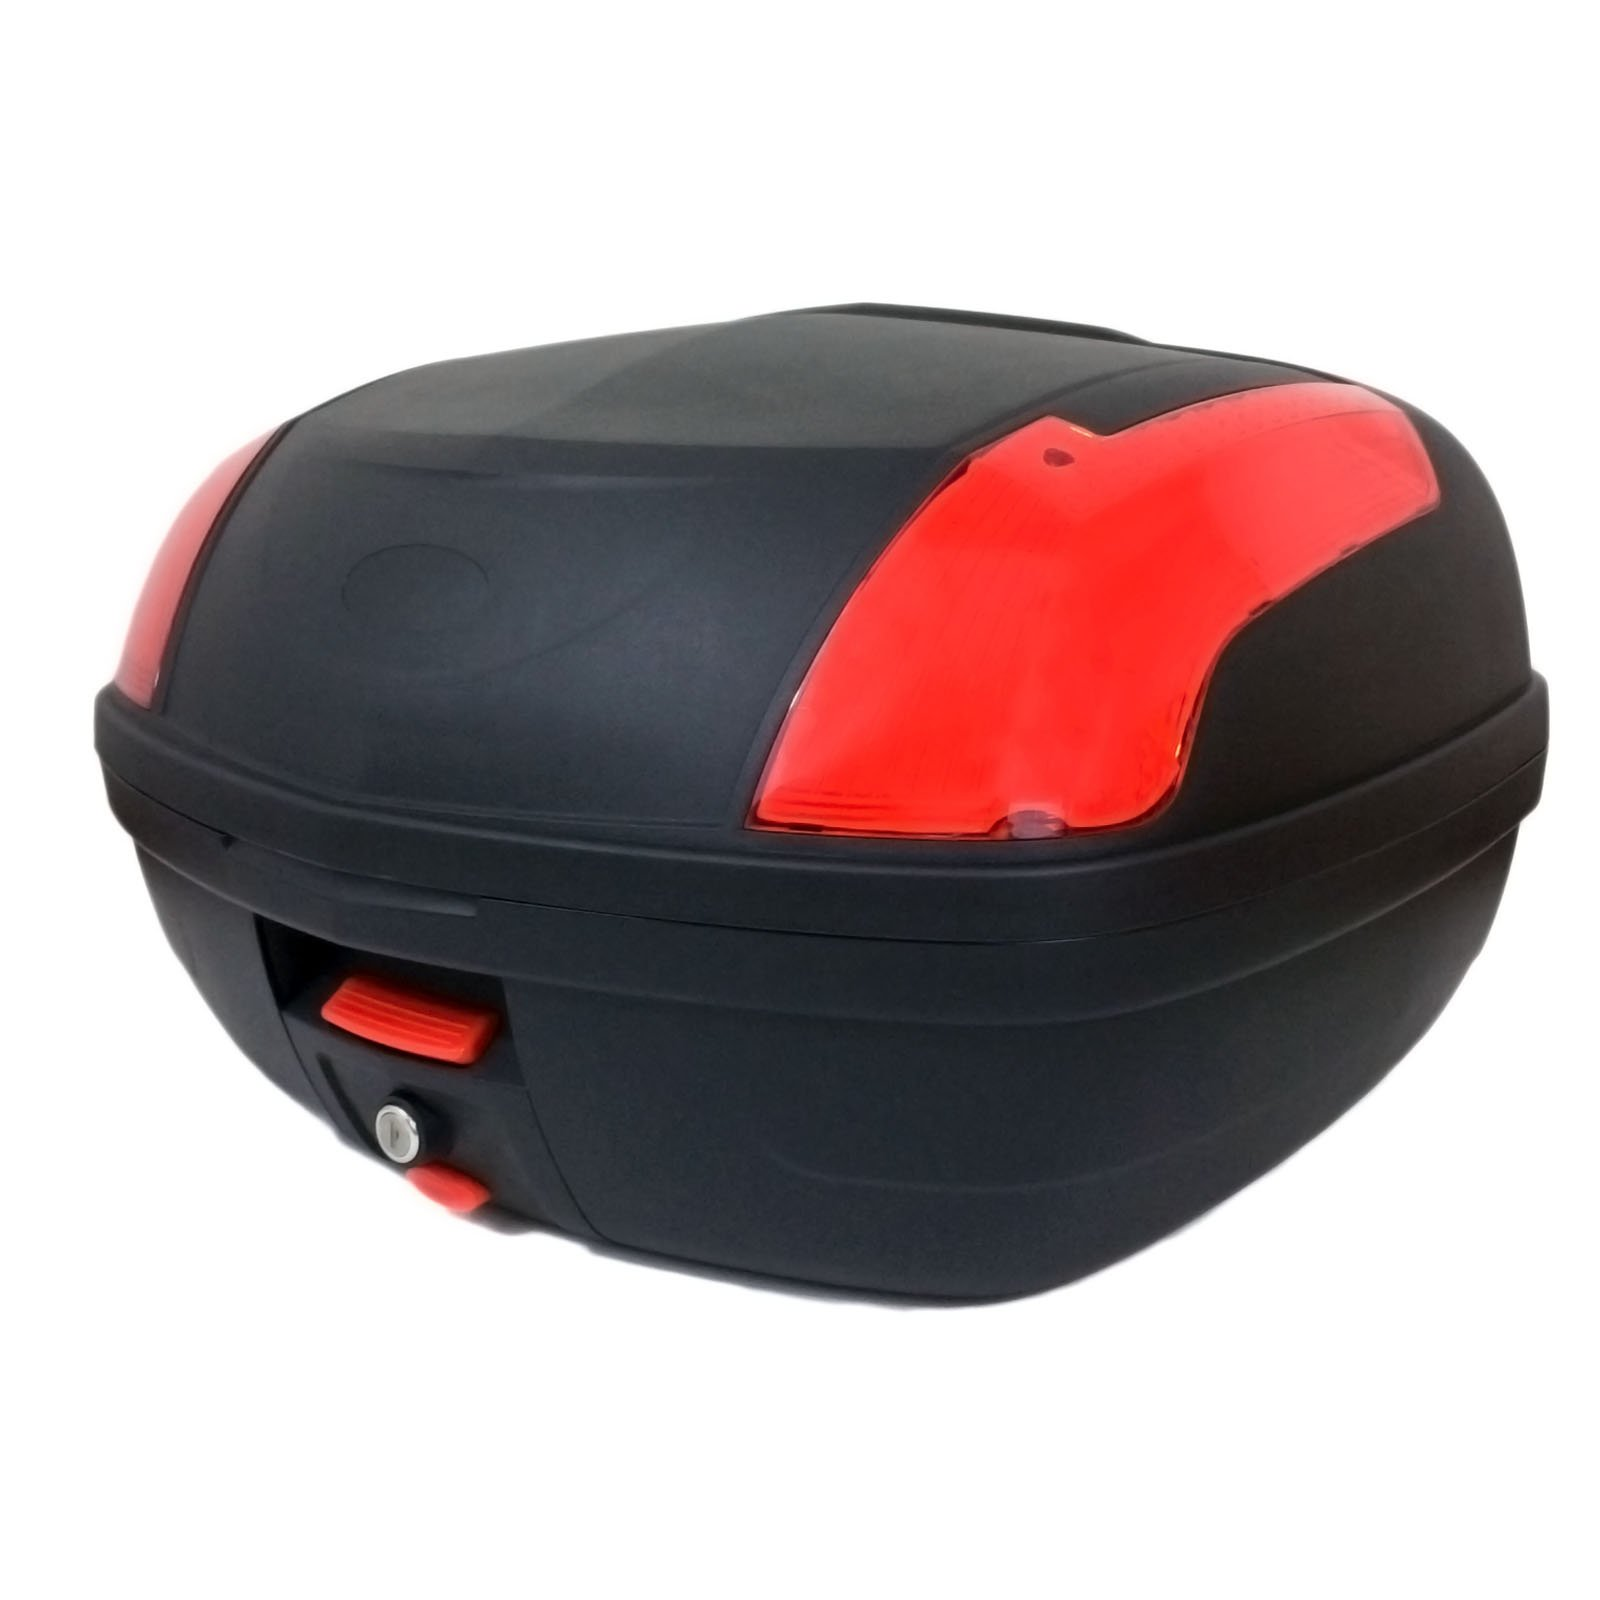 MMG Motorcycle Touring Large Top Box Tail Trunk Luggage Box, 46 Lt Capacity, Can Store 2 Helmets, Hard Case (889) by MMG